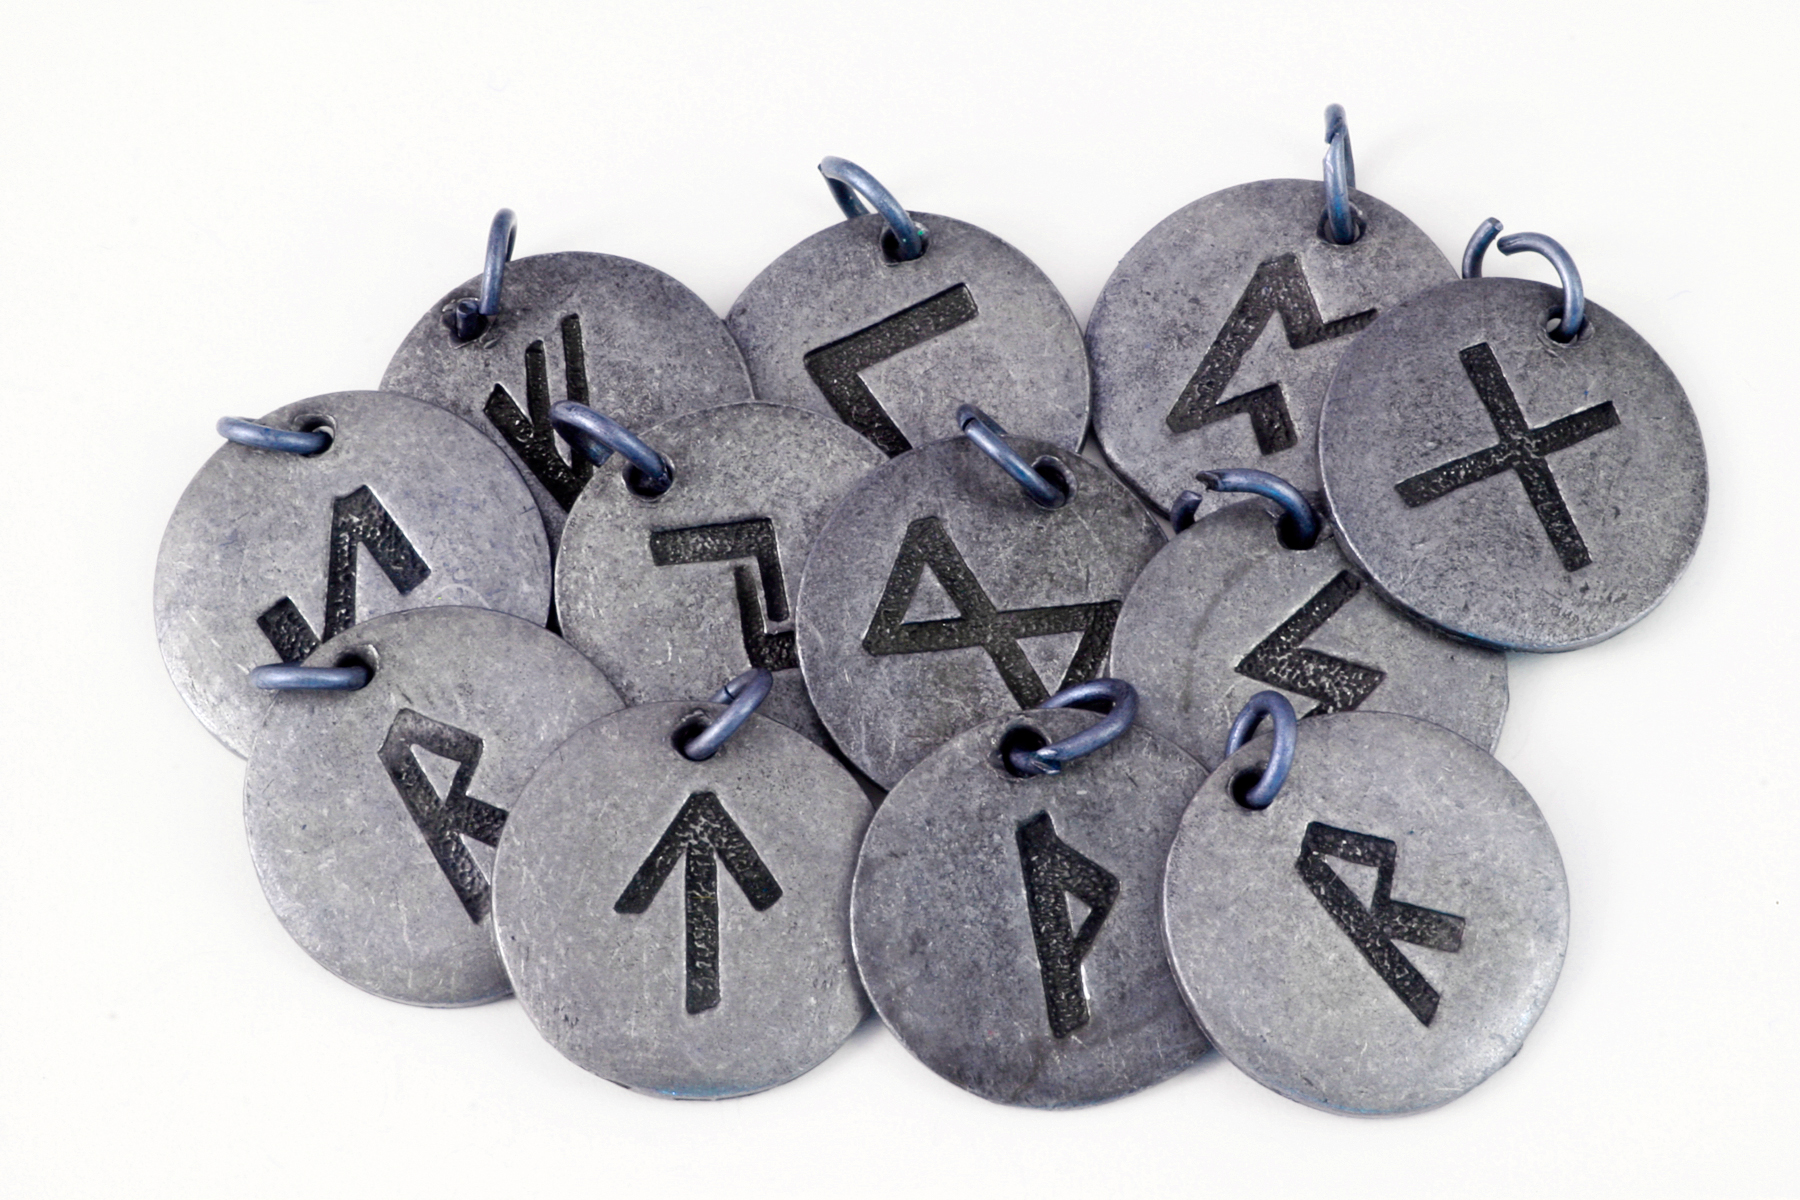 Norse Runes, Ancient, Relic, Norse, Object, HQ Photo